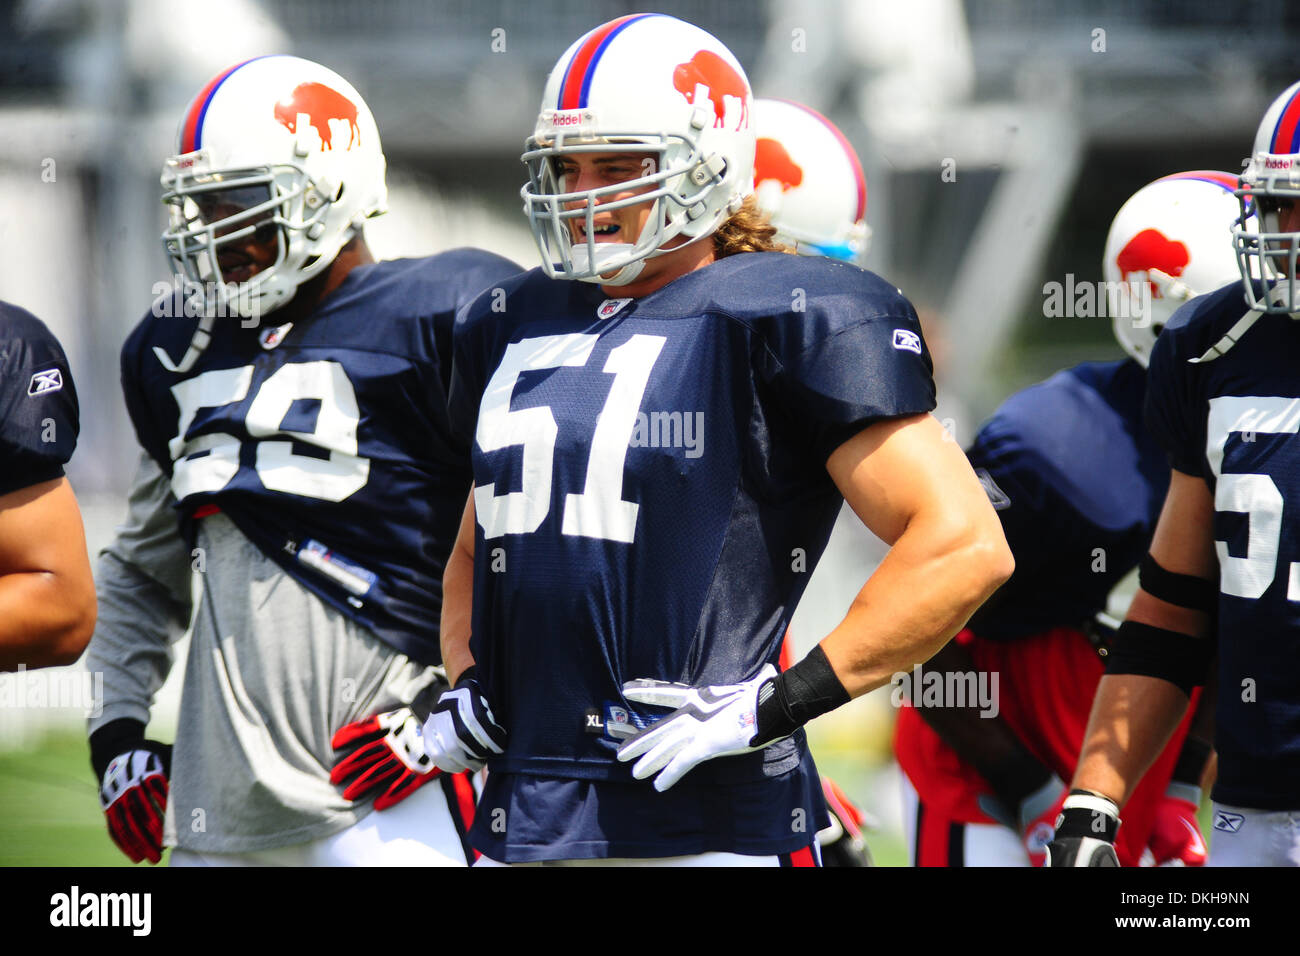 Buffalo Bills linebacker Paul Posluszny waits on the offense